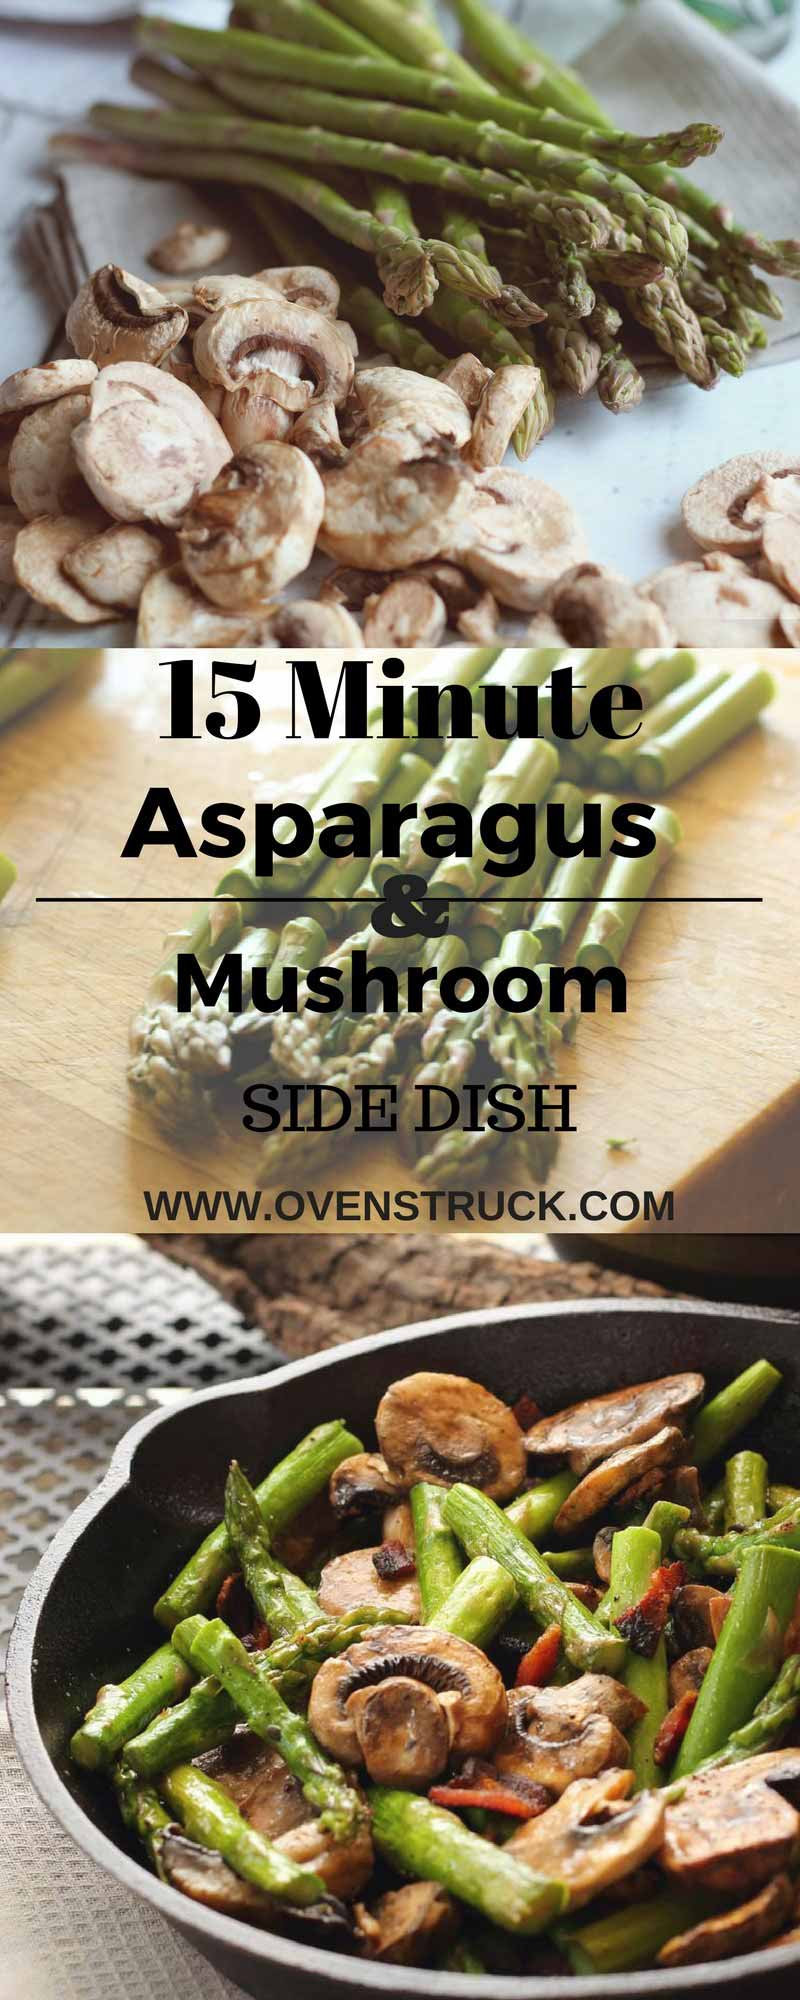 15 Minute Asparagus Mushroom And Bacon You Can't Go Wrong Oven